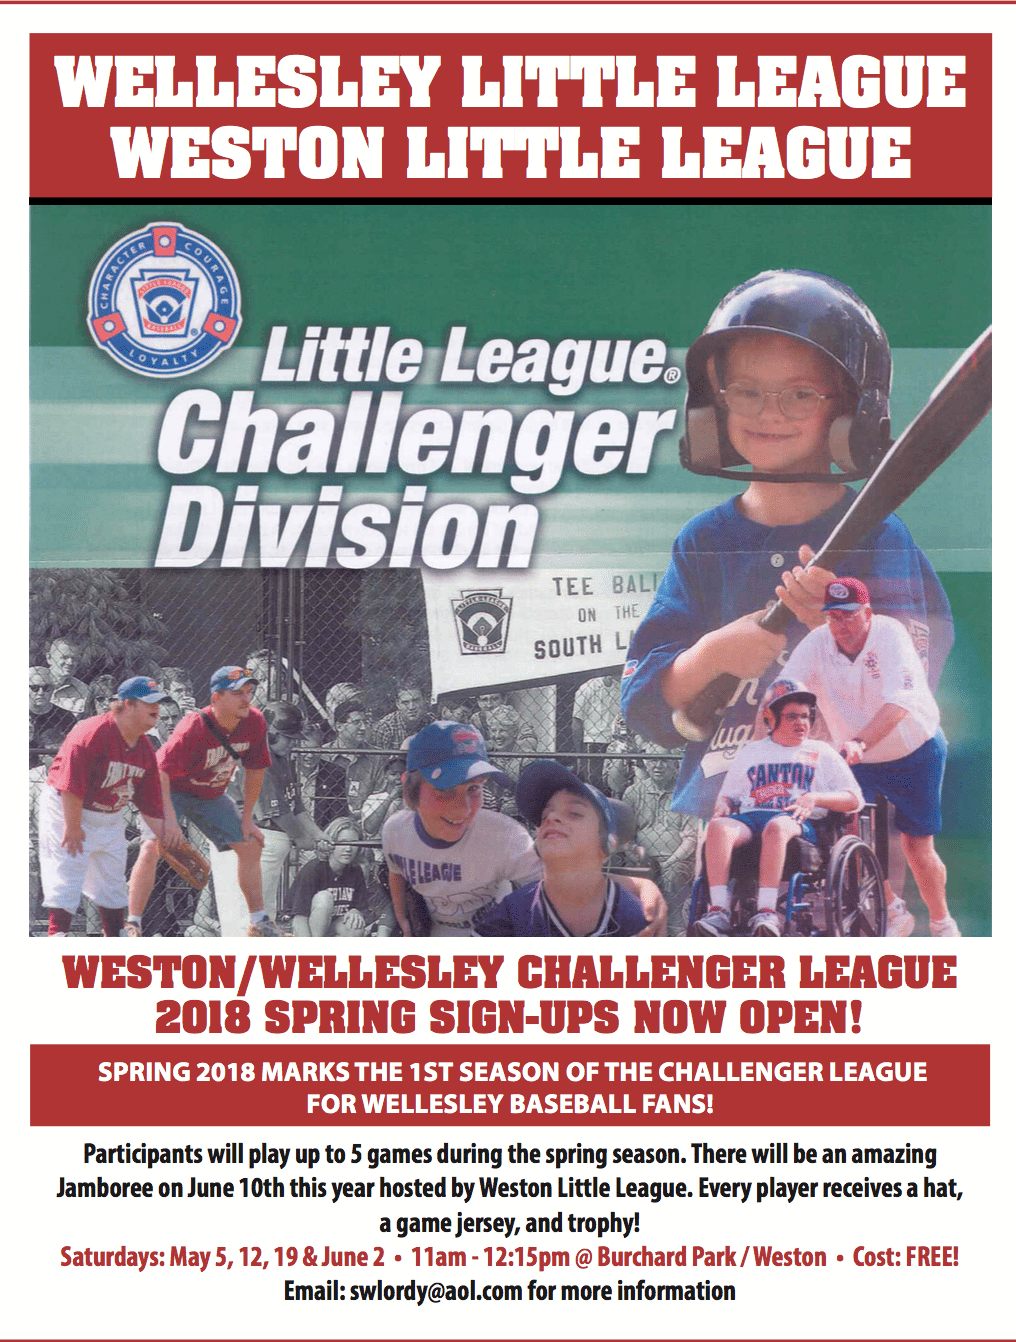 wellesley little league challenger baseball